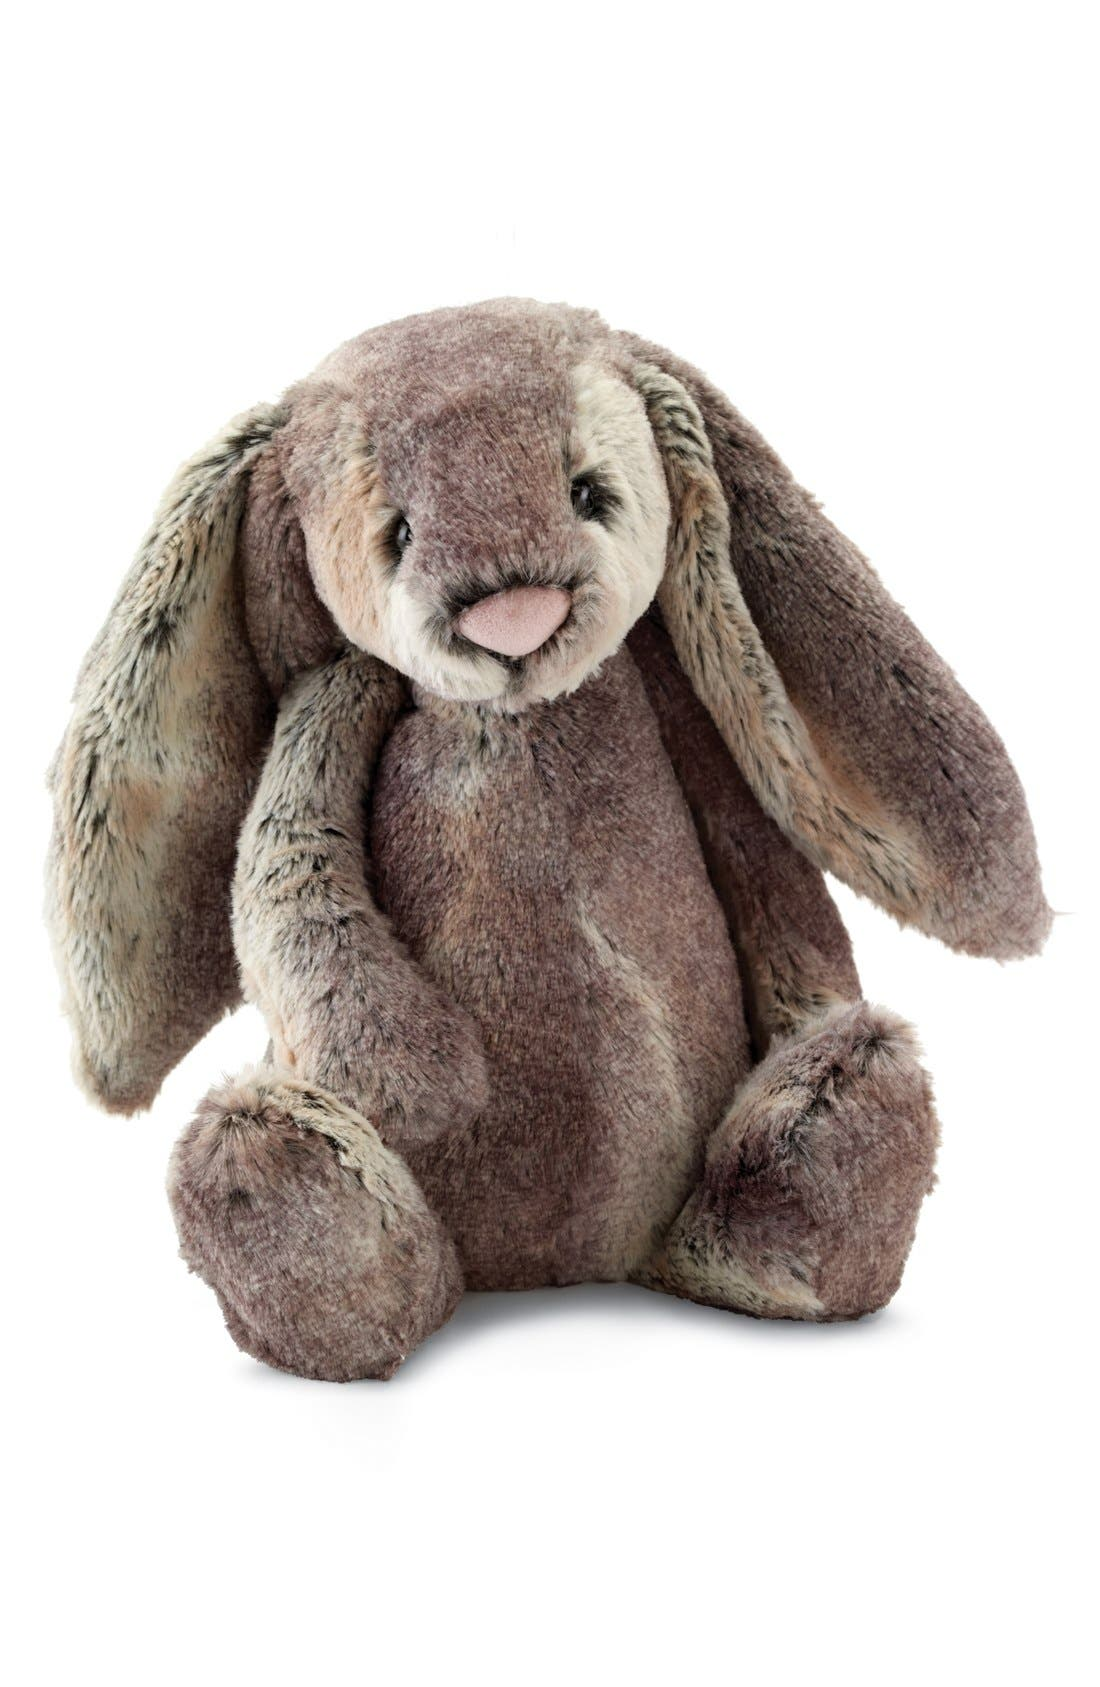 Alternate Image 1 Selected - Jellycat Woodland Babe Bunny Stuffed Animal